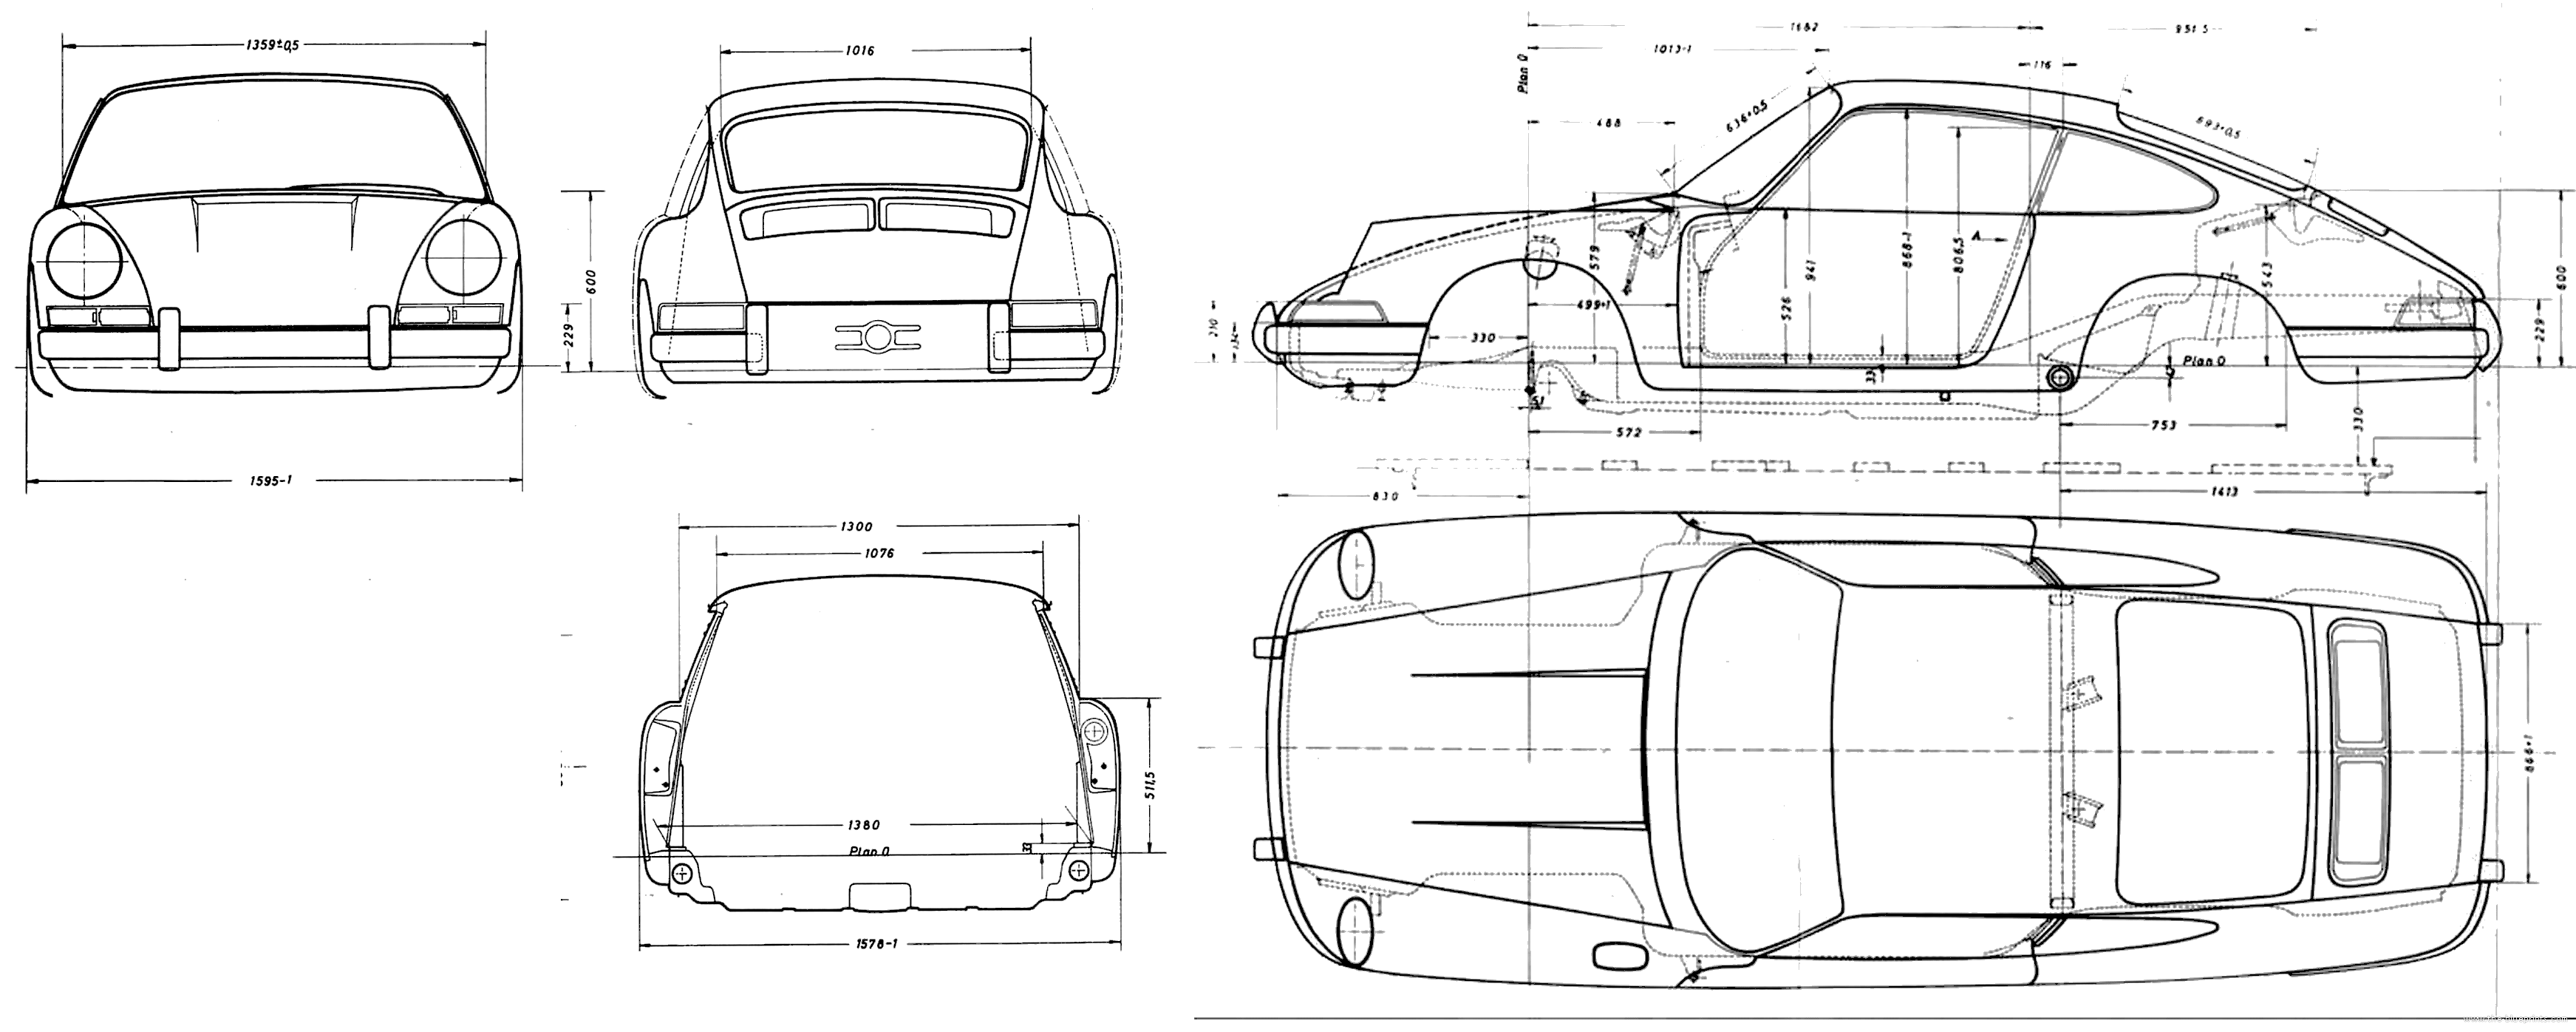 Introduction in addition 521221356846430631 additionally Nose Panel Front Porsche 944 Turbo 944 S2 in addition 62 67 CHEVY II TUBE CHASSIS BLUEPRINT OSCARItem 423 08 505 BP further Coloriage Ferrari. on porsche 911 chassis